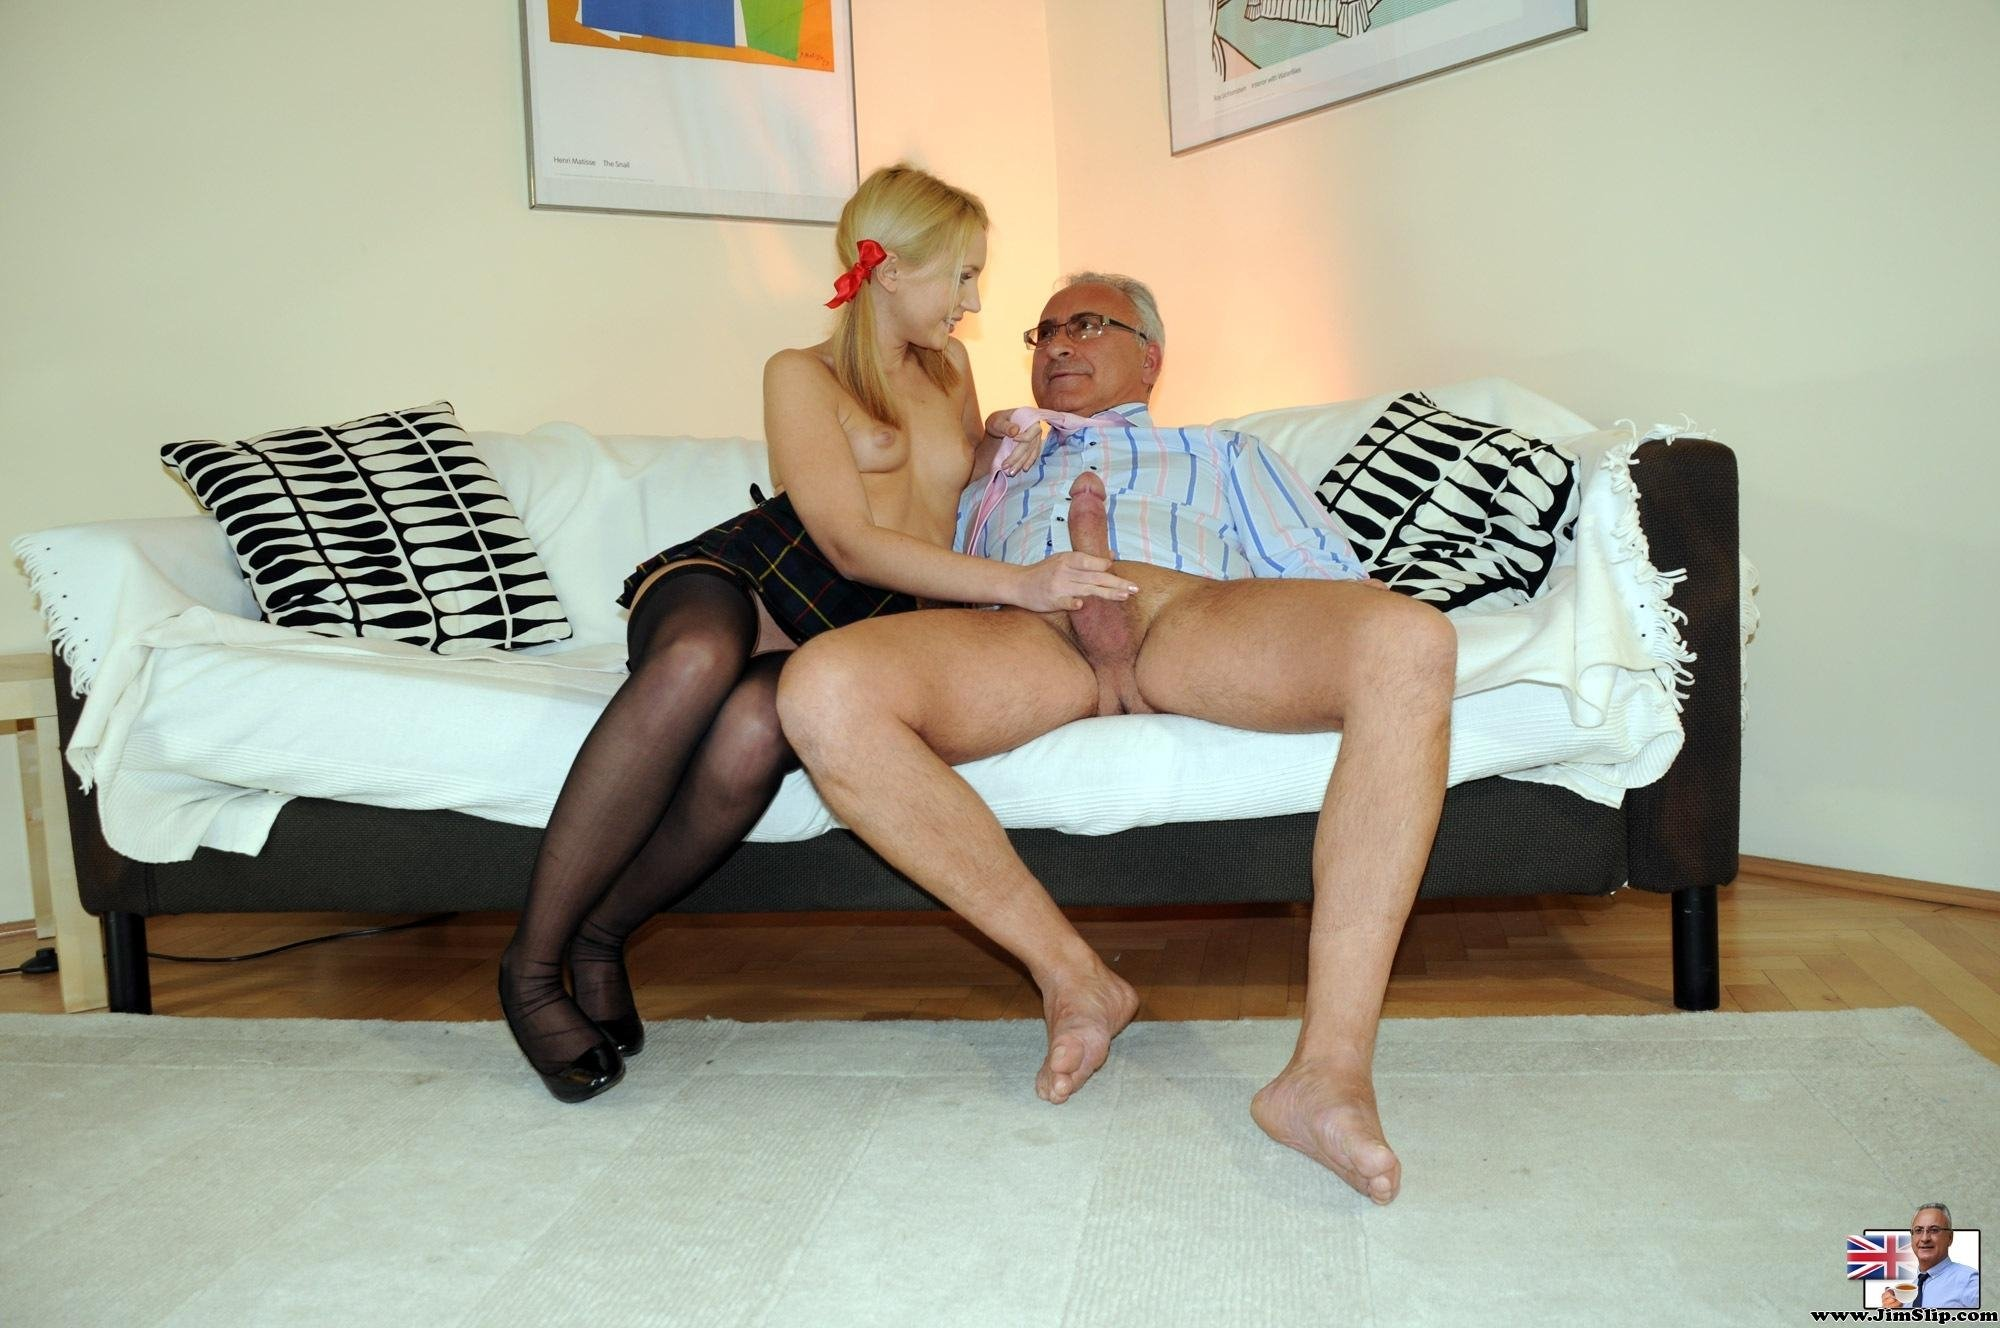 Wife loves to suck cock of other men Amatr mature swinger